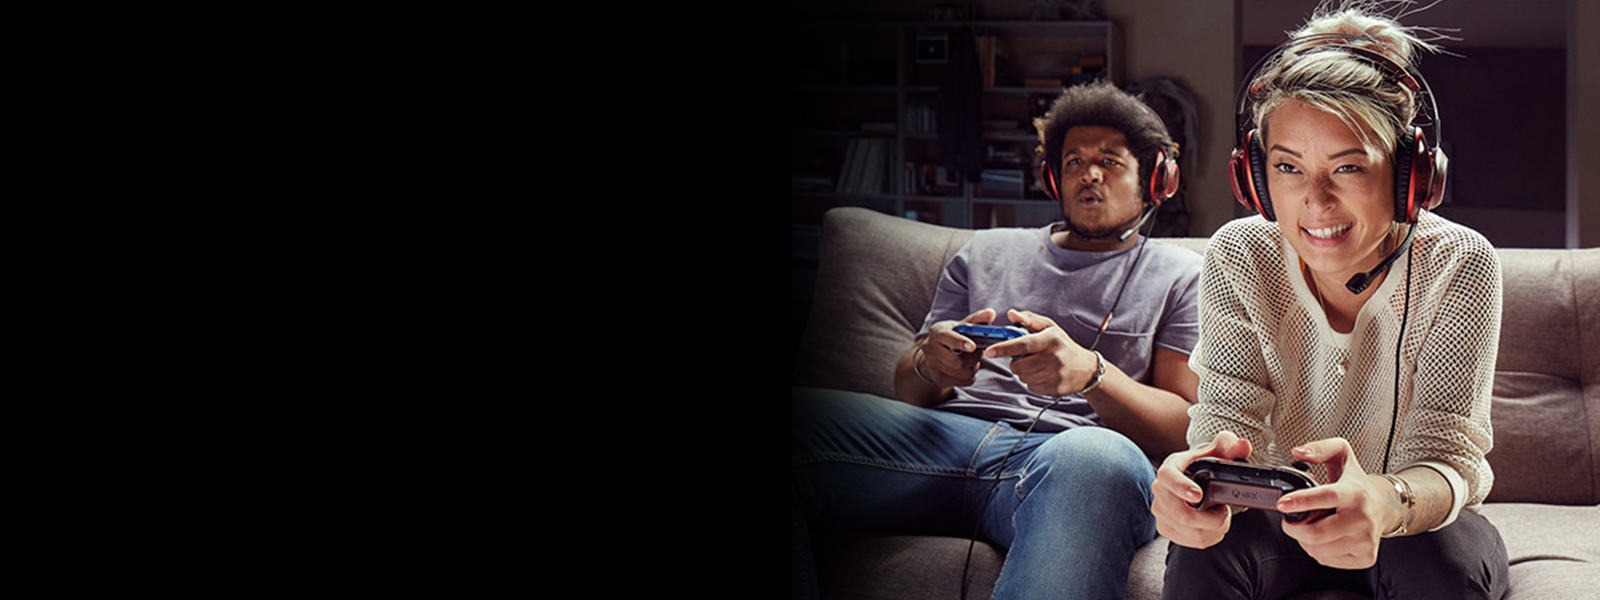 Two gamers sitting on a couch and playing Xbox together